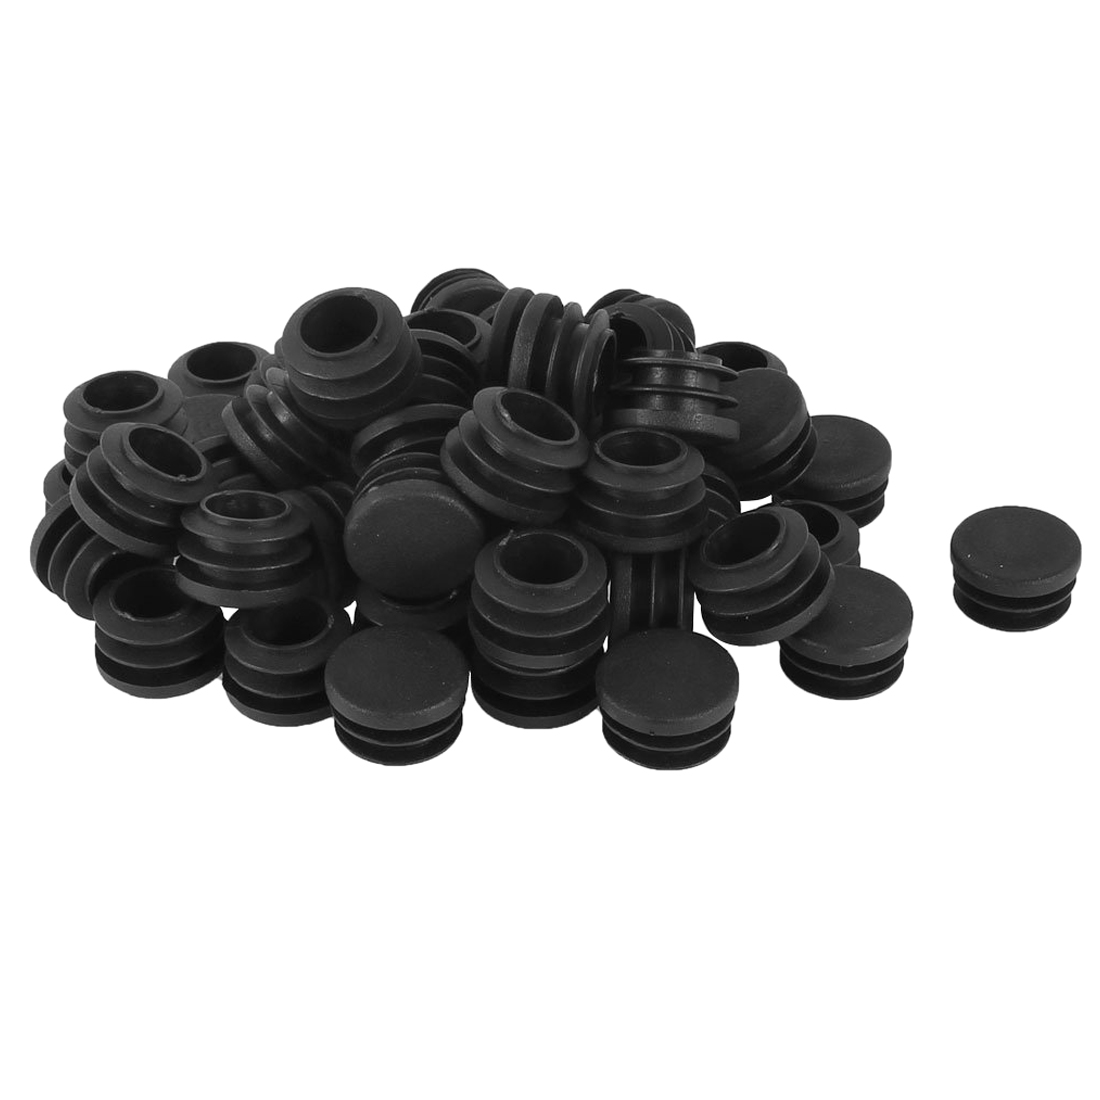 Promotion! Plastic Round Cap Chair Table Legs Ribbed Tube Insert 22mm Dia 50 PcsPromotion! Plastic Round Cap Chair Table Legs Ribbed Tube Insert 22mm Dia 50 Pcs